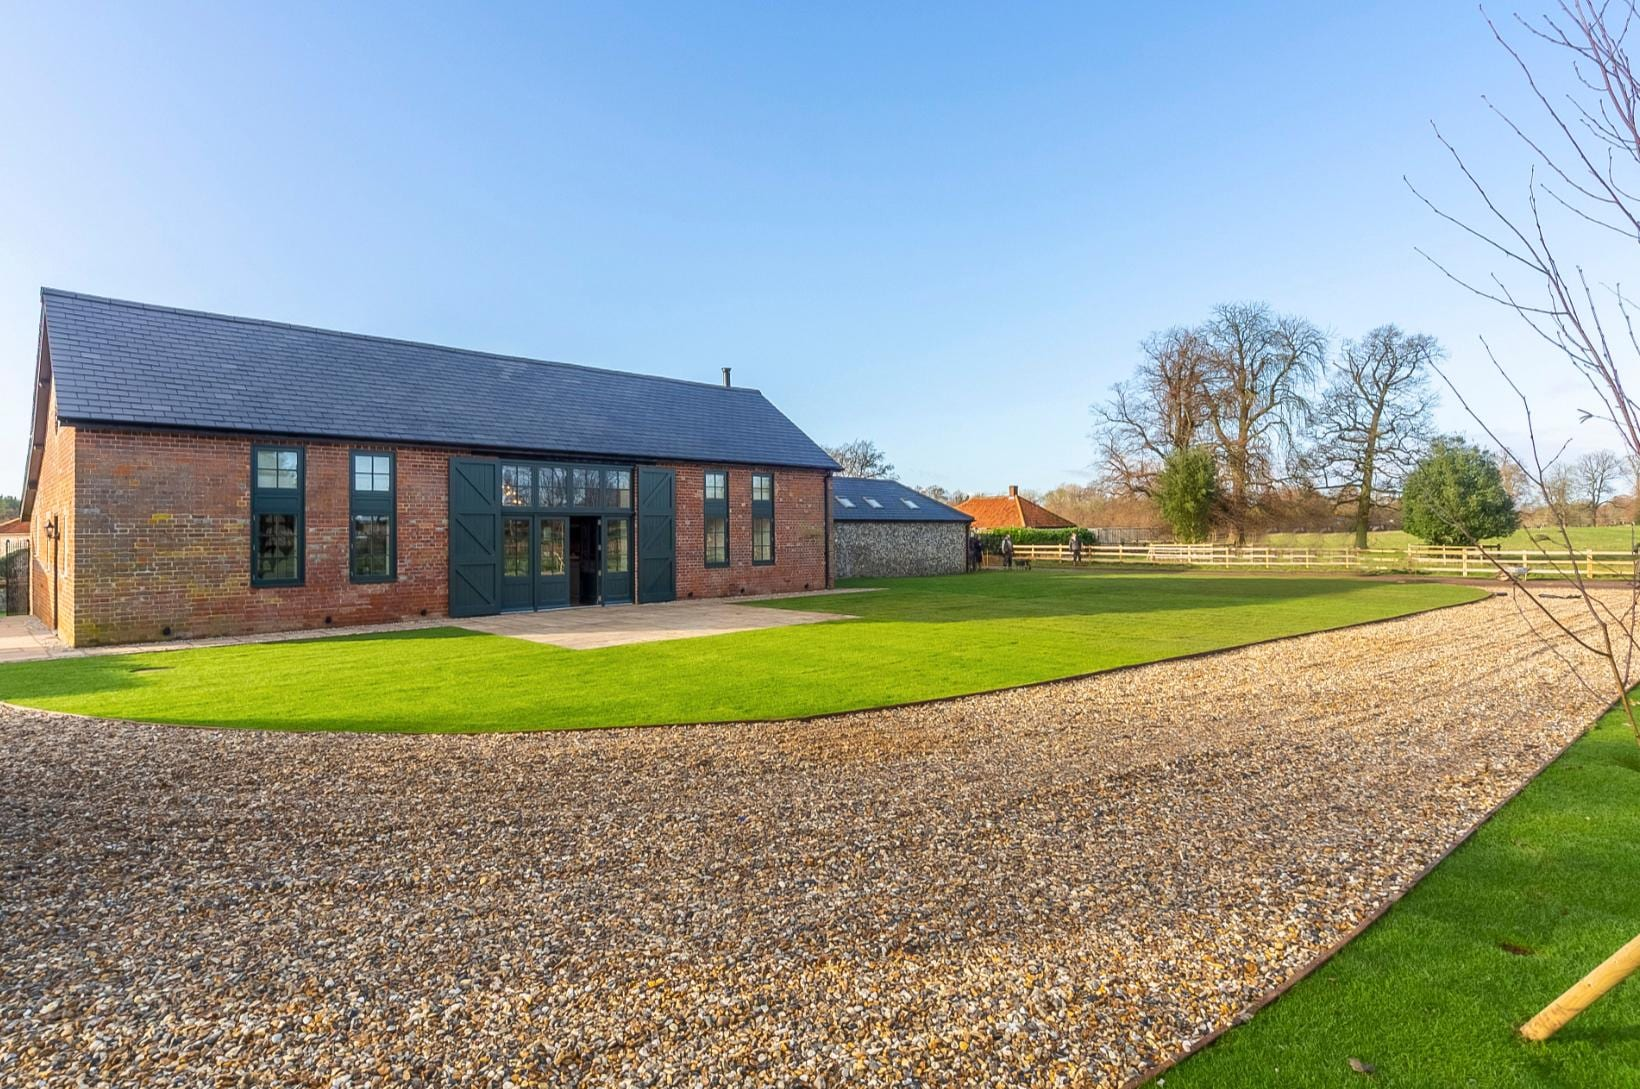 Property Image 1 - Wonderful 5 Bedroom Home within 40 Acre Estate in the heart of Norfolk's Breckland Countryside